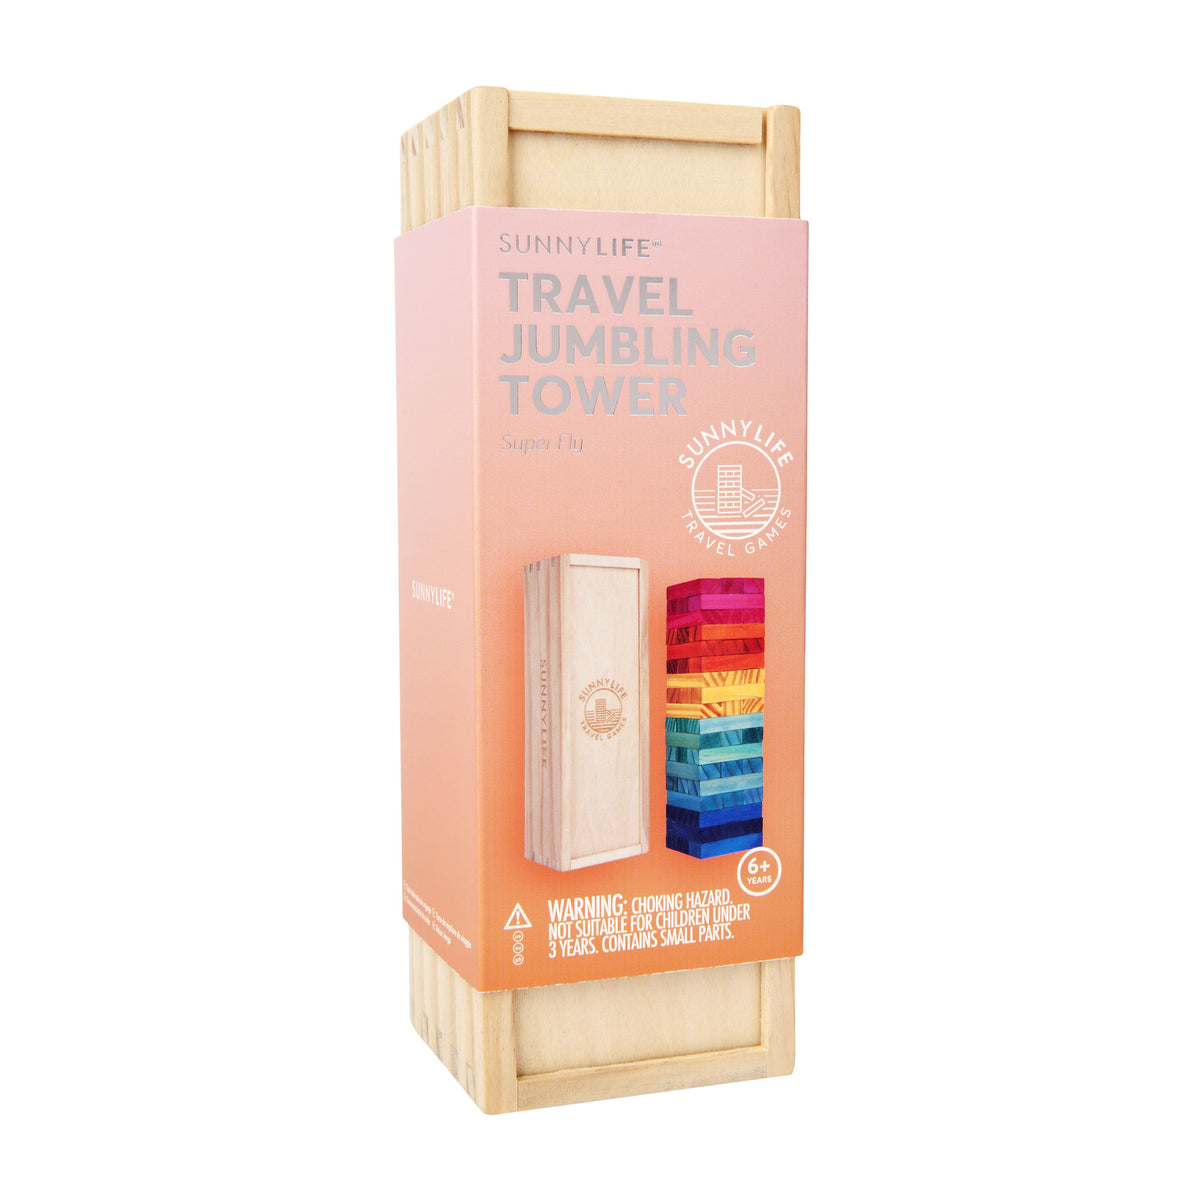 Sunnylife | Travel Jumbling Tower | Super Fly